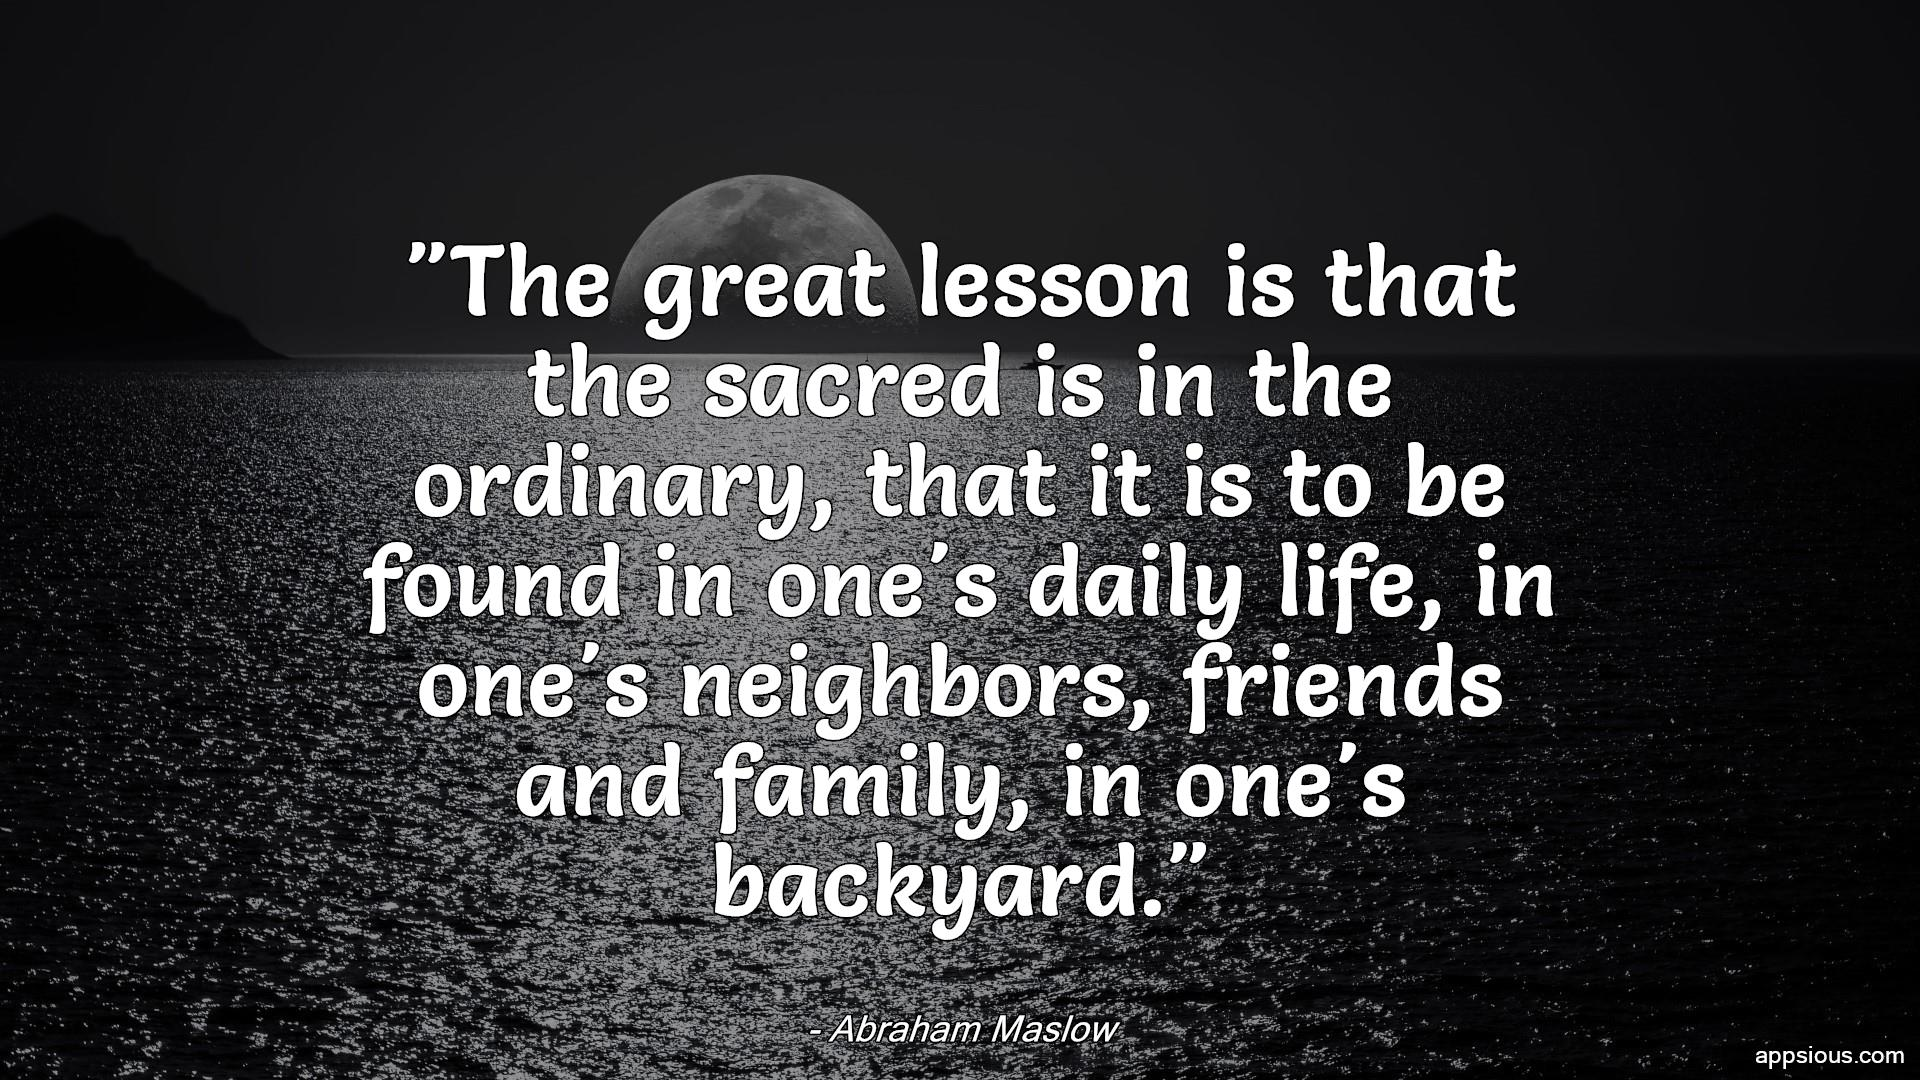 The great lesson is that the sacred is in the ordinary, that it is to be found in one's daily life, in one's neighbors, friends and family, in one's backyard.